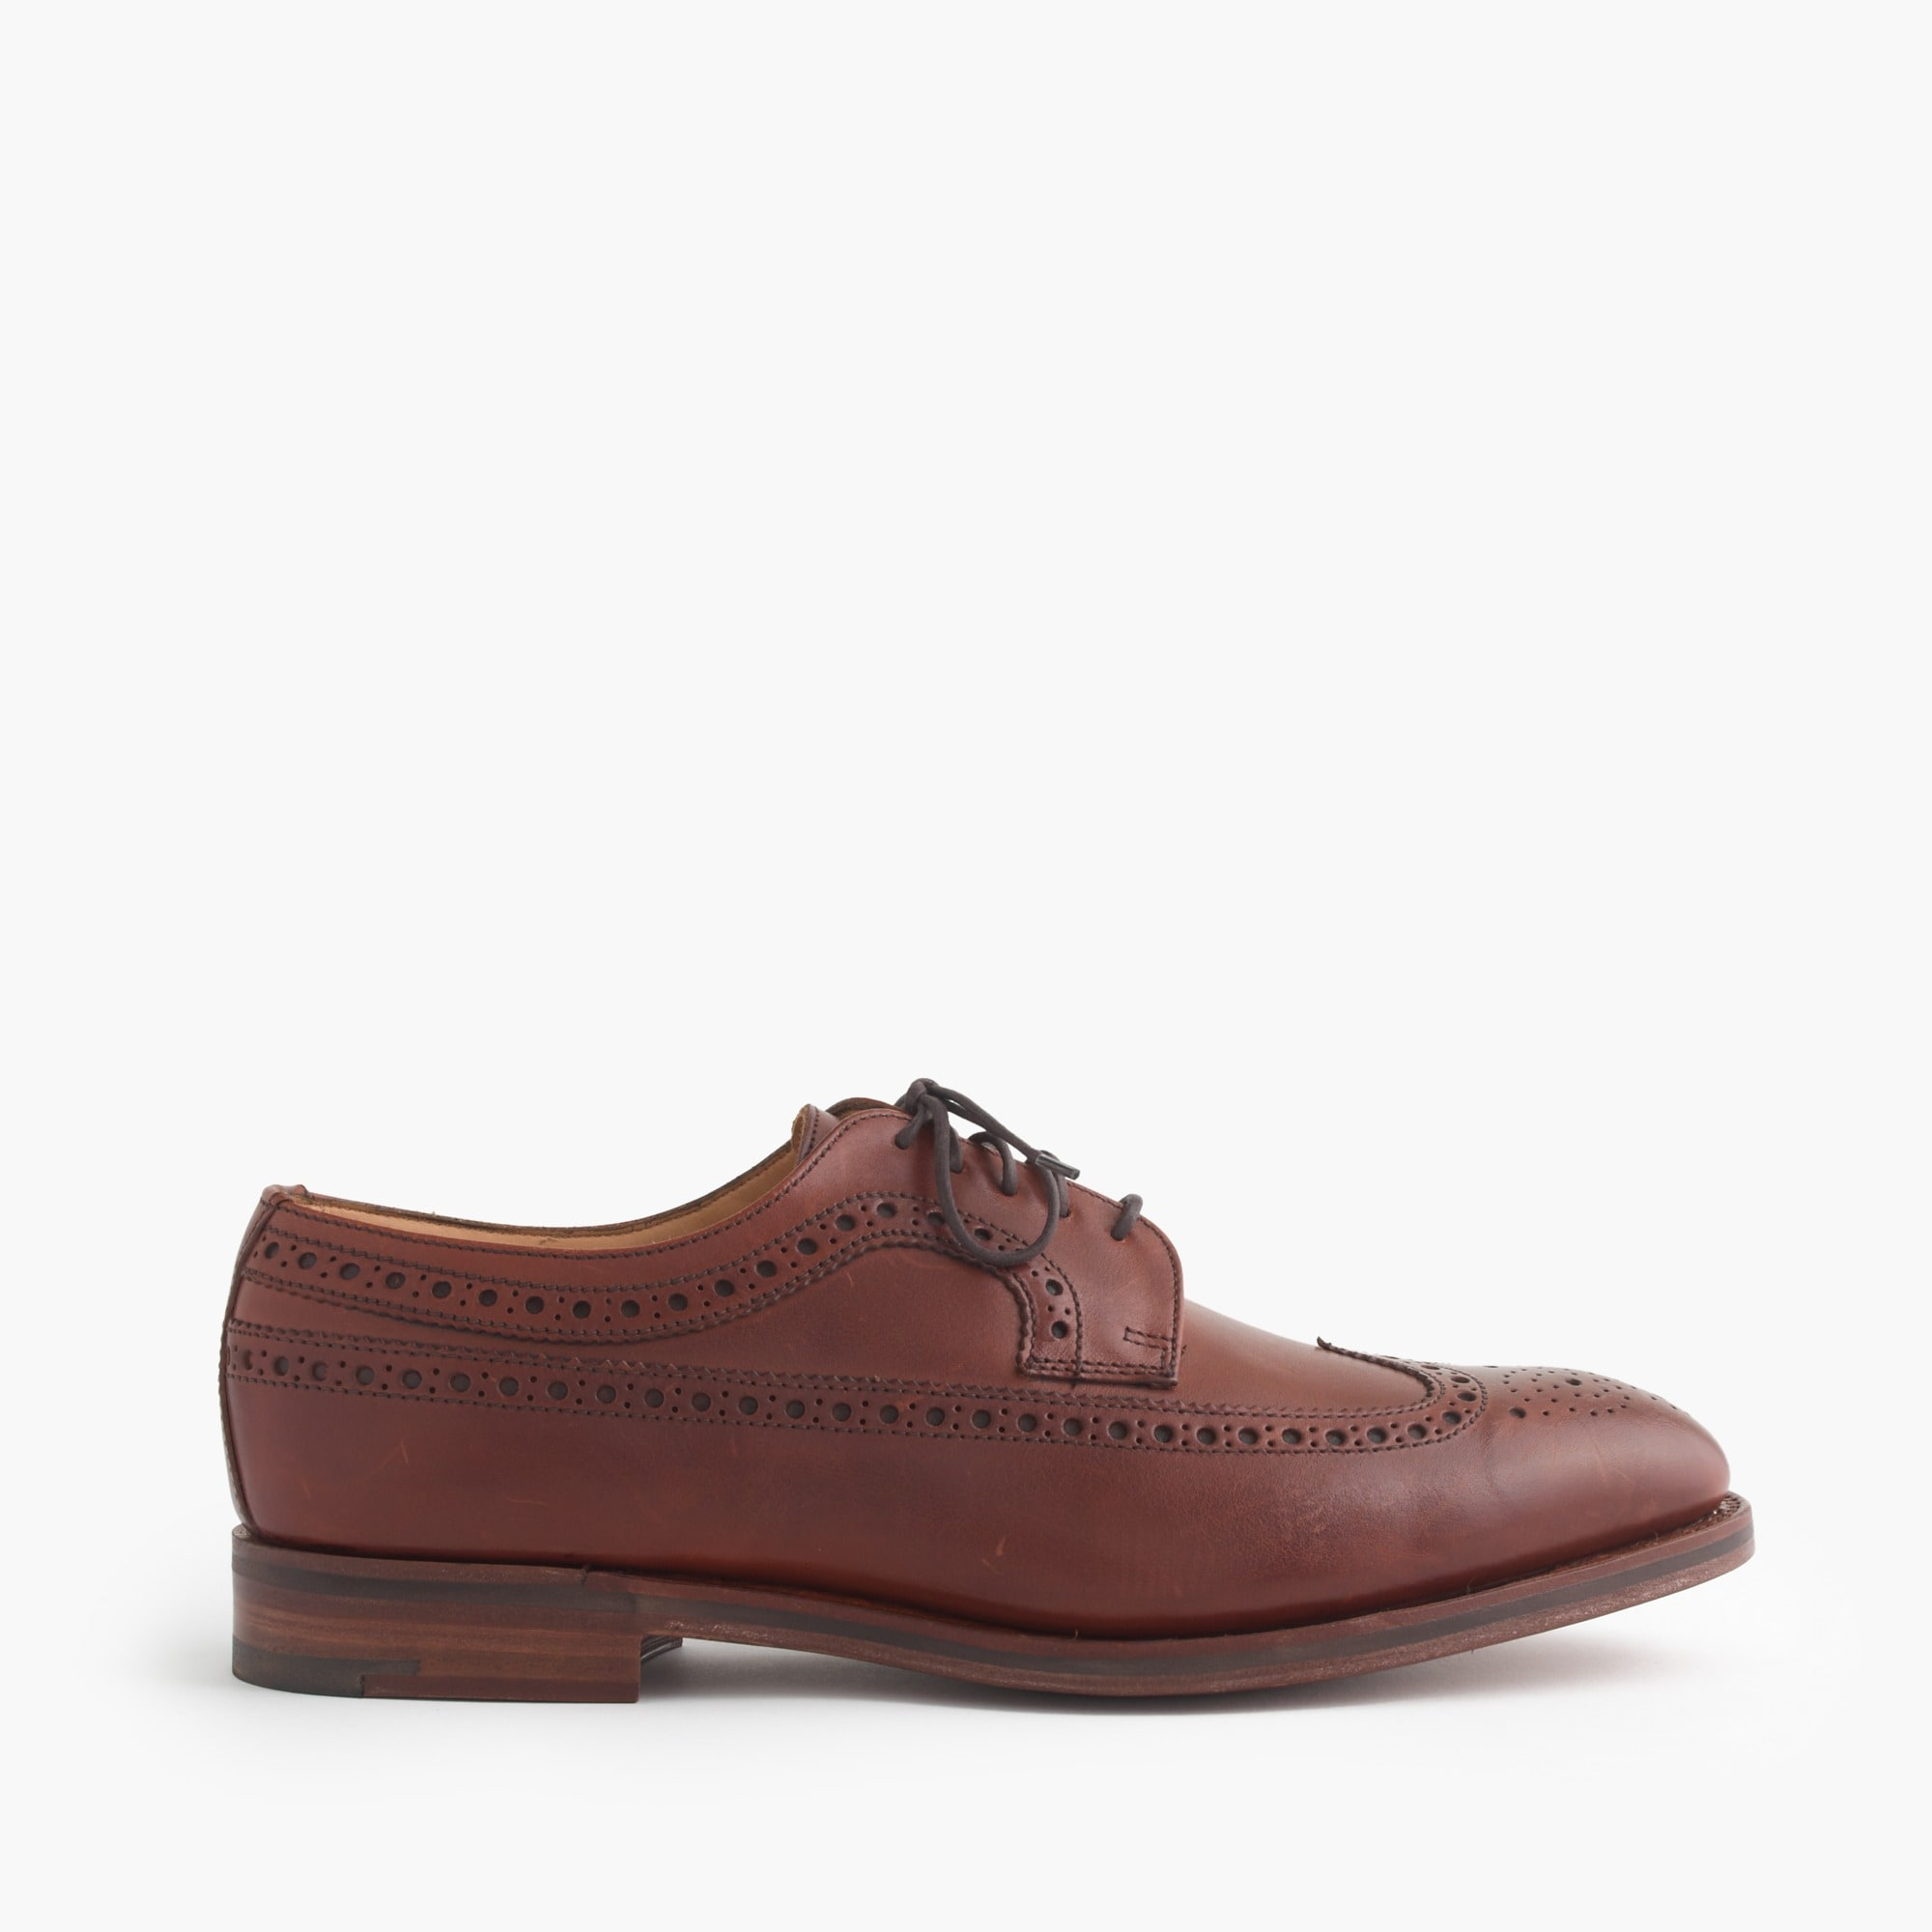 Alfred Sargent™ for J.Crew American brogues men j.crew in good company c